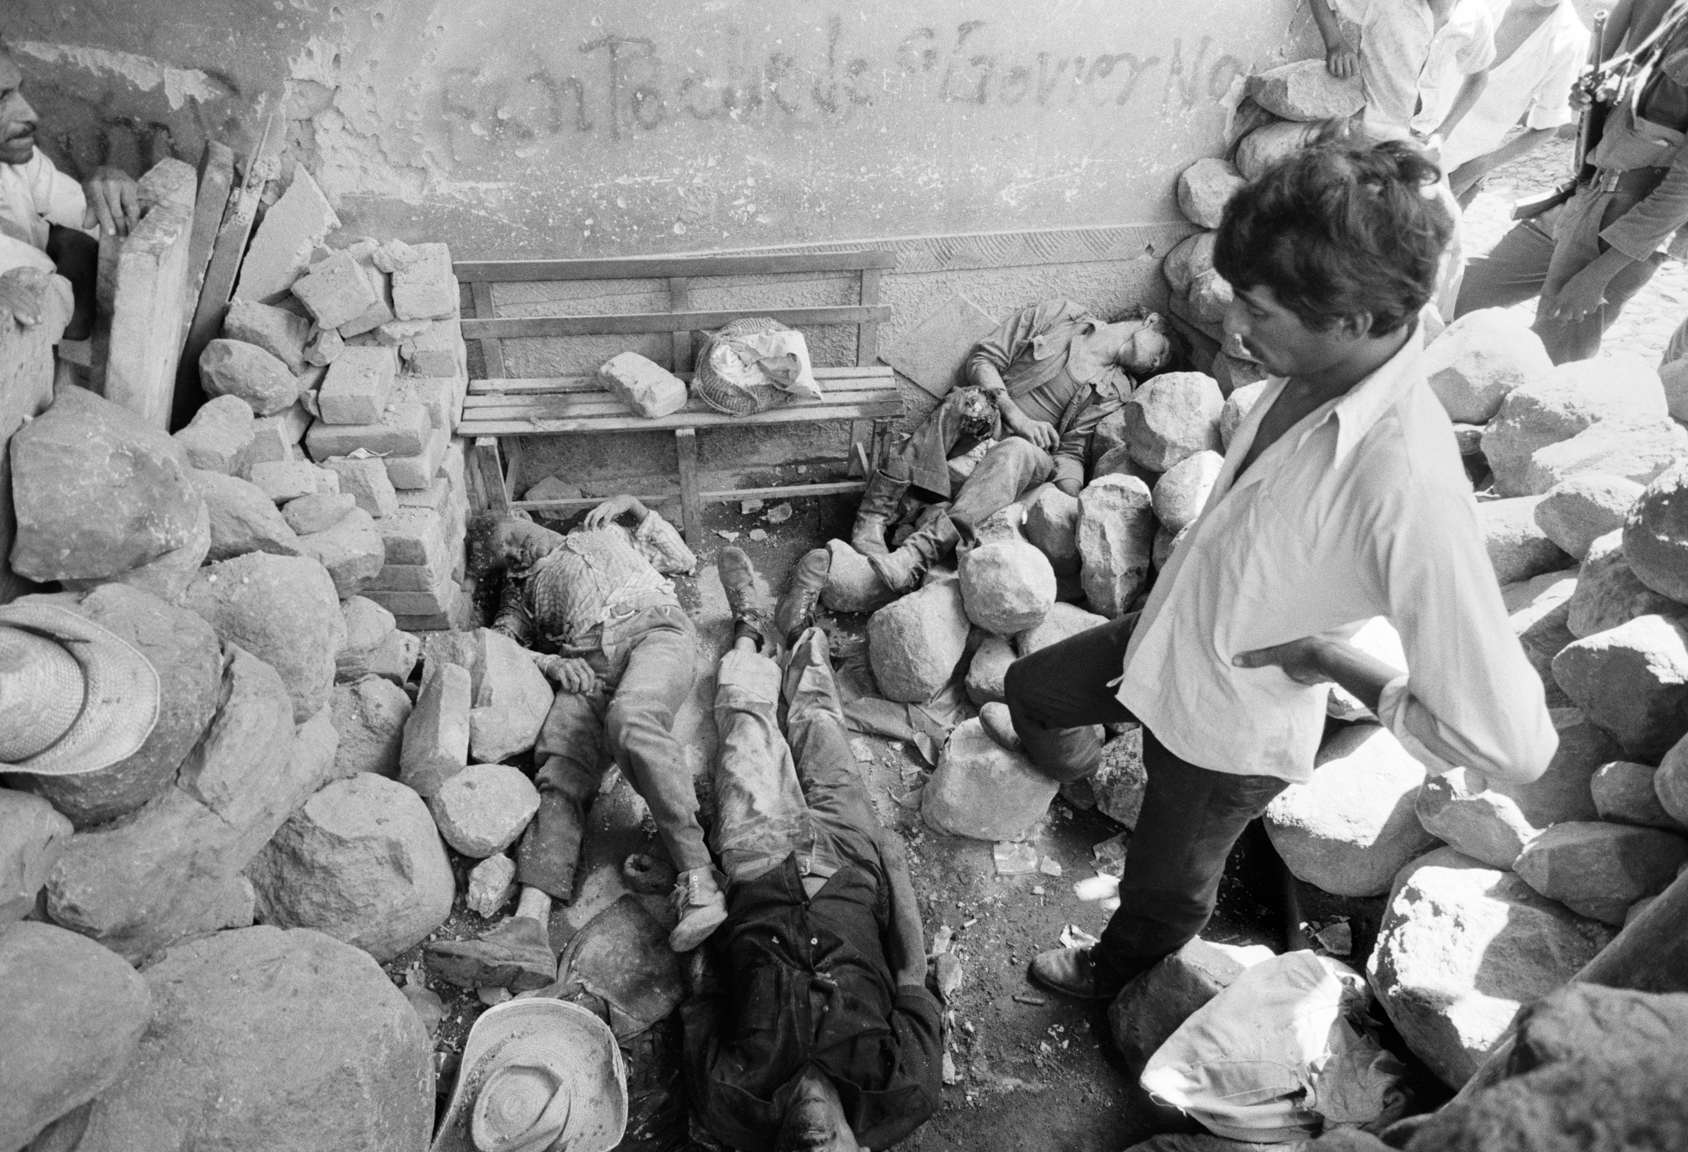 Civilians look over the dead bodies of 3 civil defensemen killed during an overnight attack by FMLN guerrillas July 1982 on a civil defense post in Santa Clara, El Salvador. Guerrillas attacked the town killing 6 civil defensemen before Salvadoran army soldiers arrived the next morning retaking the town, 50 kms from the capital, San Salvador.